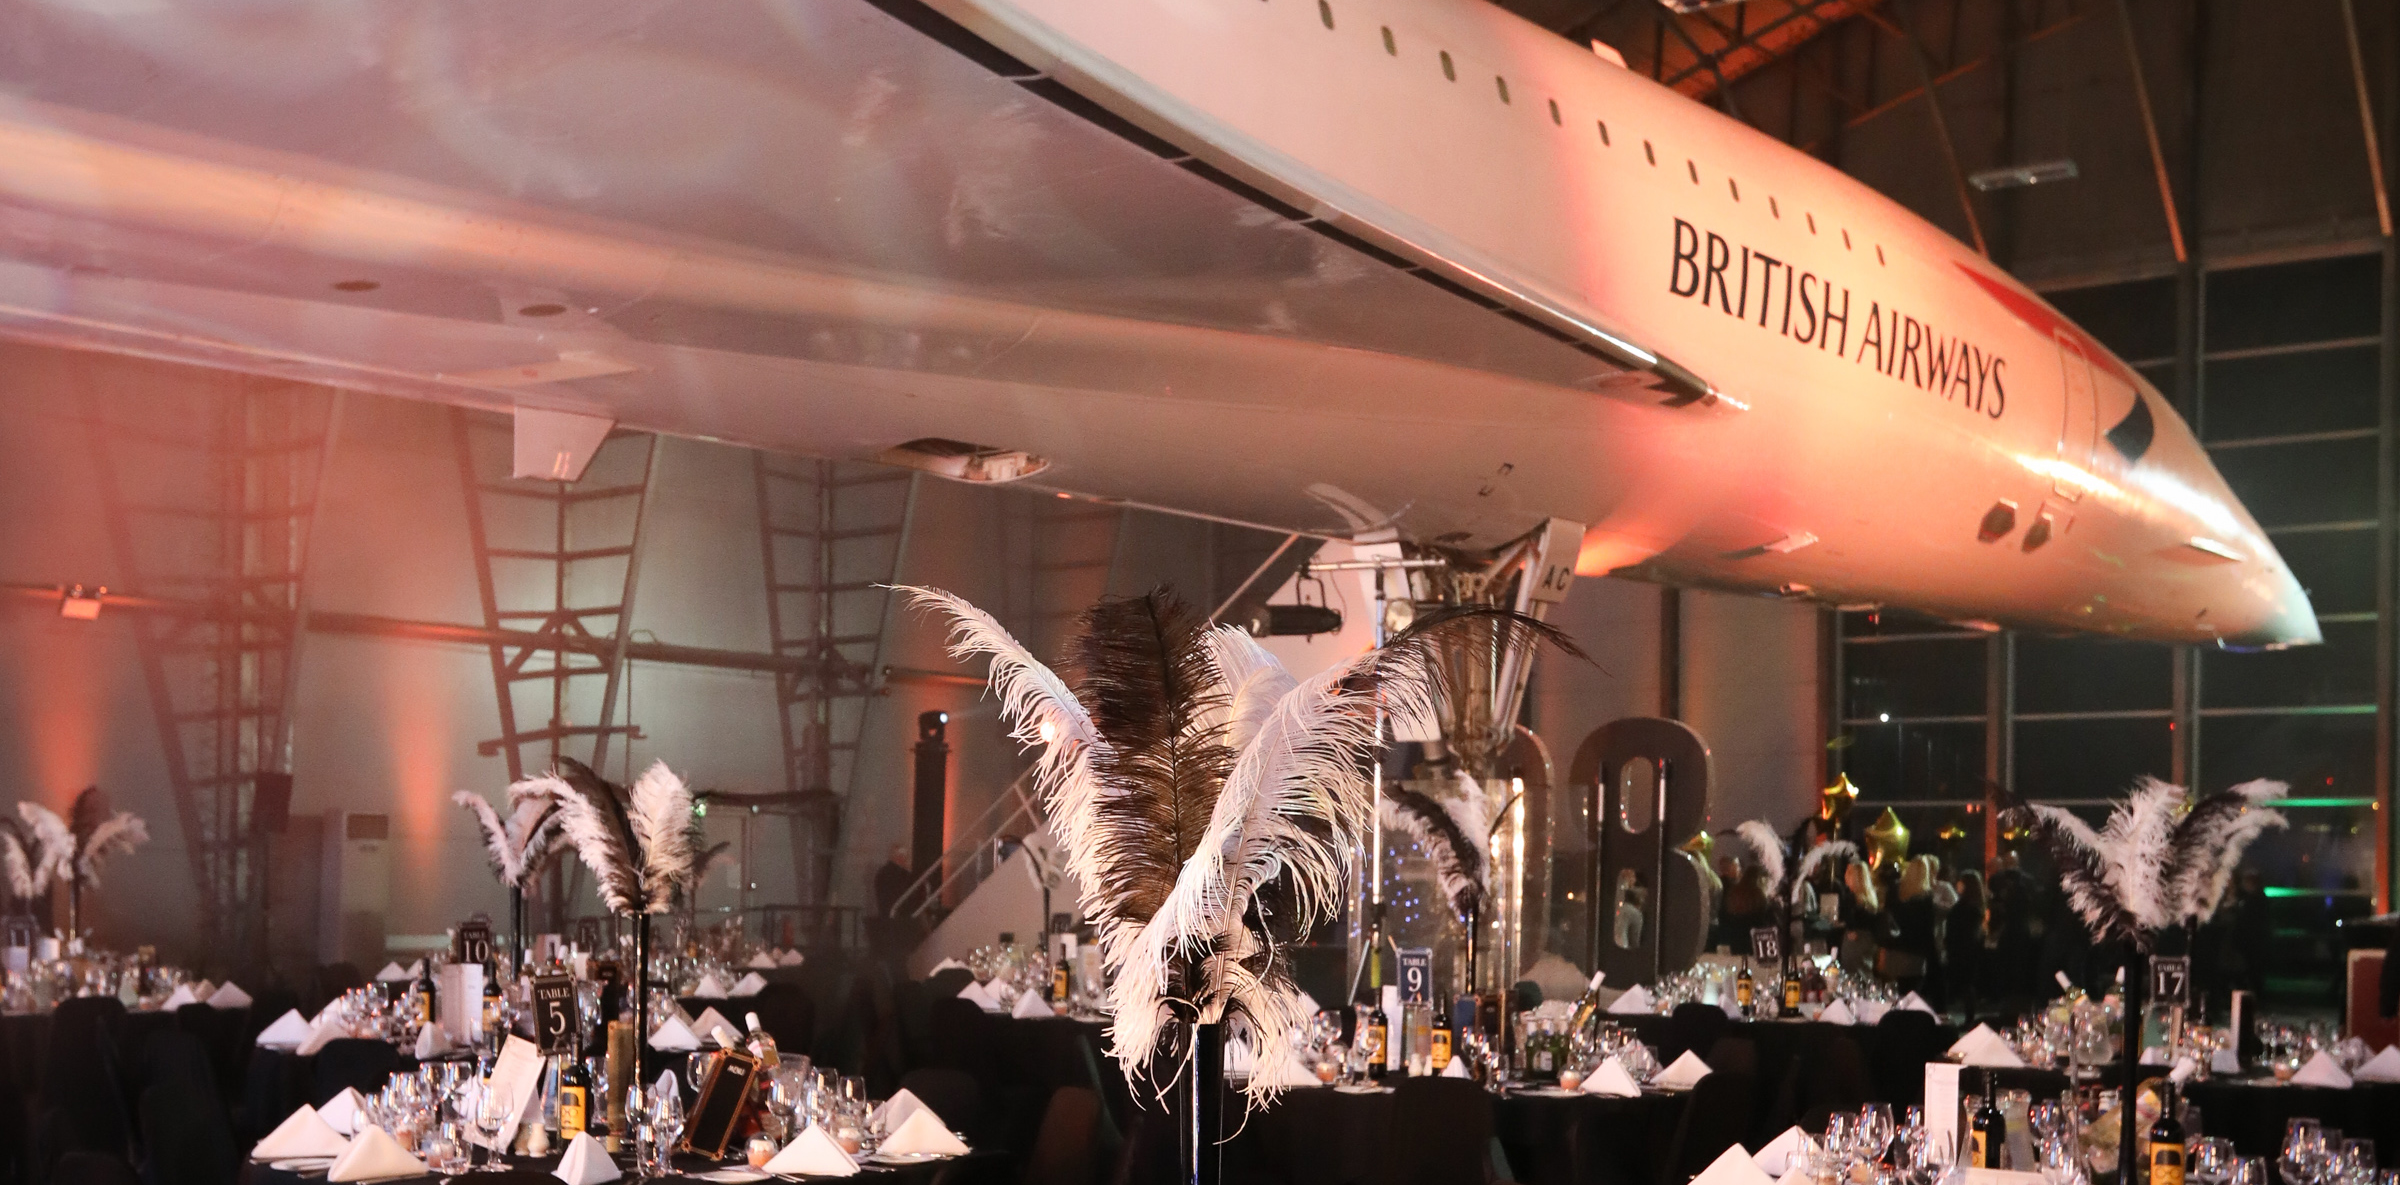 Weddings at the Concorde Conference Centre